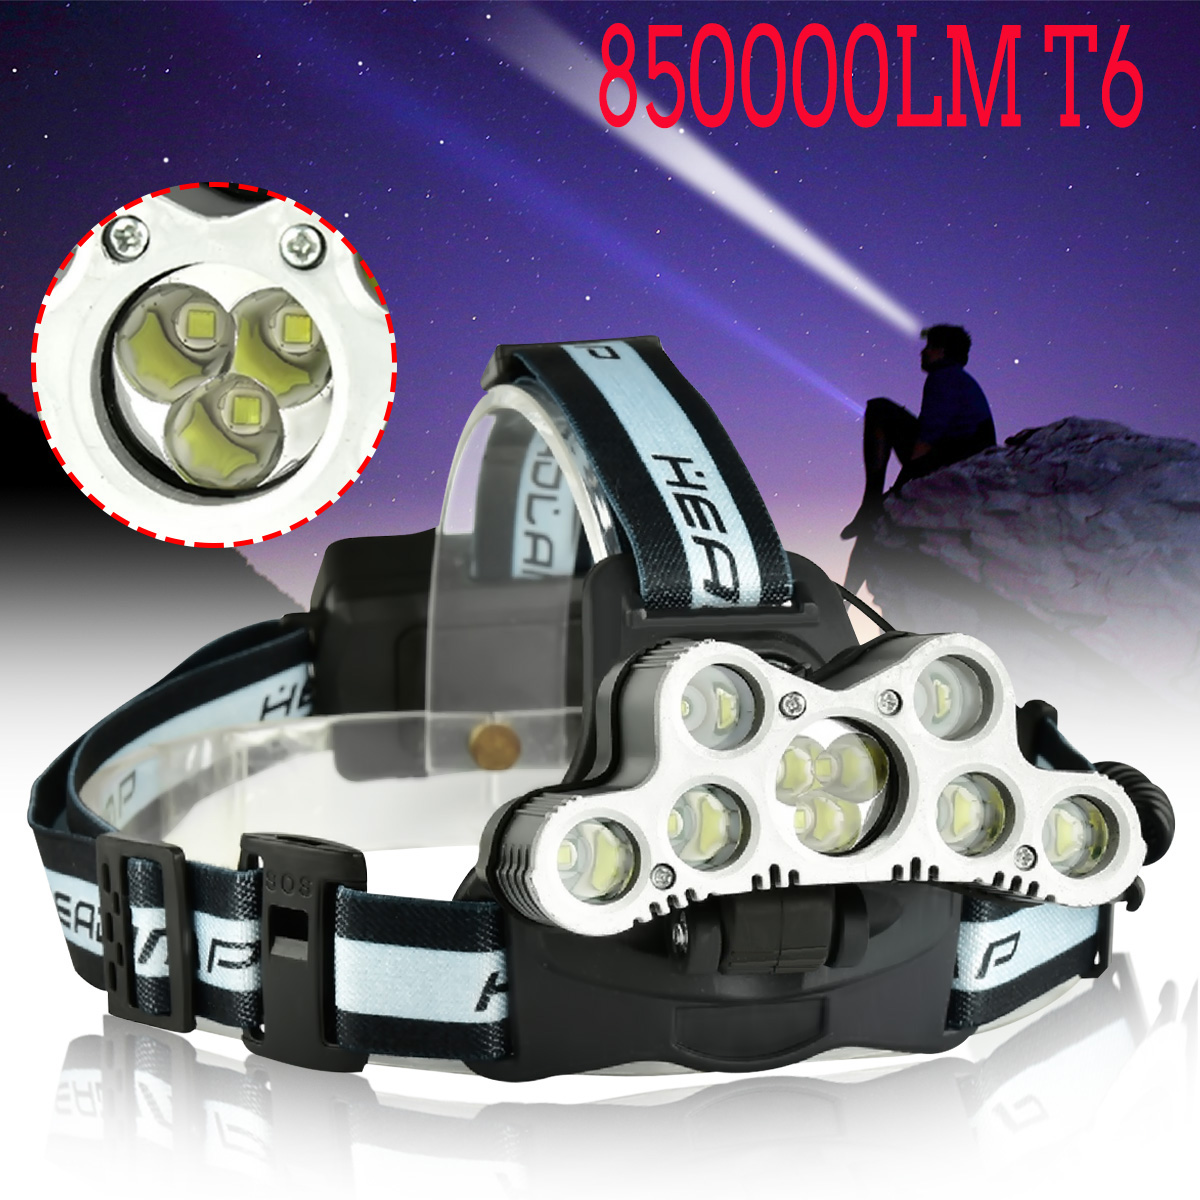 6000Lumens 9xT6 LED Waterproof Zoomable USB Rechargeable Headlight Headlamp with SOS Help Whistle 6 Modes For Camping Hiking